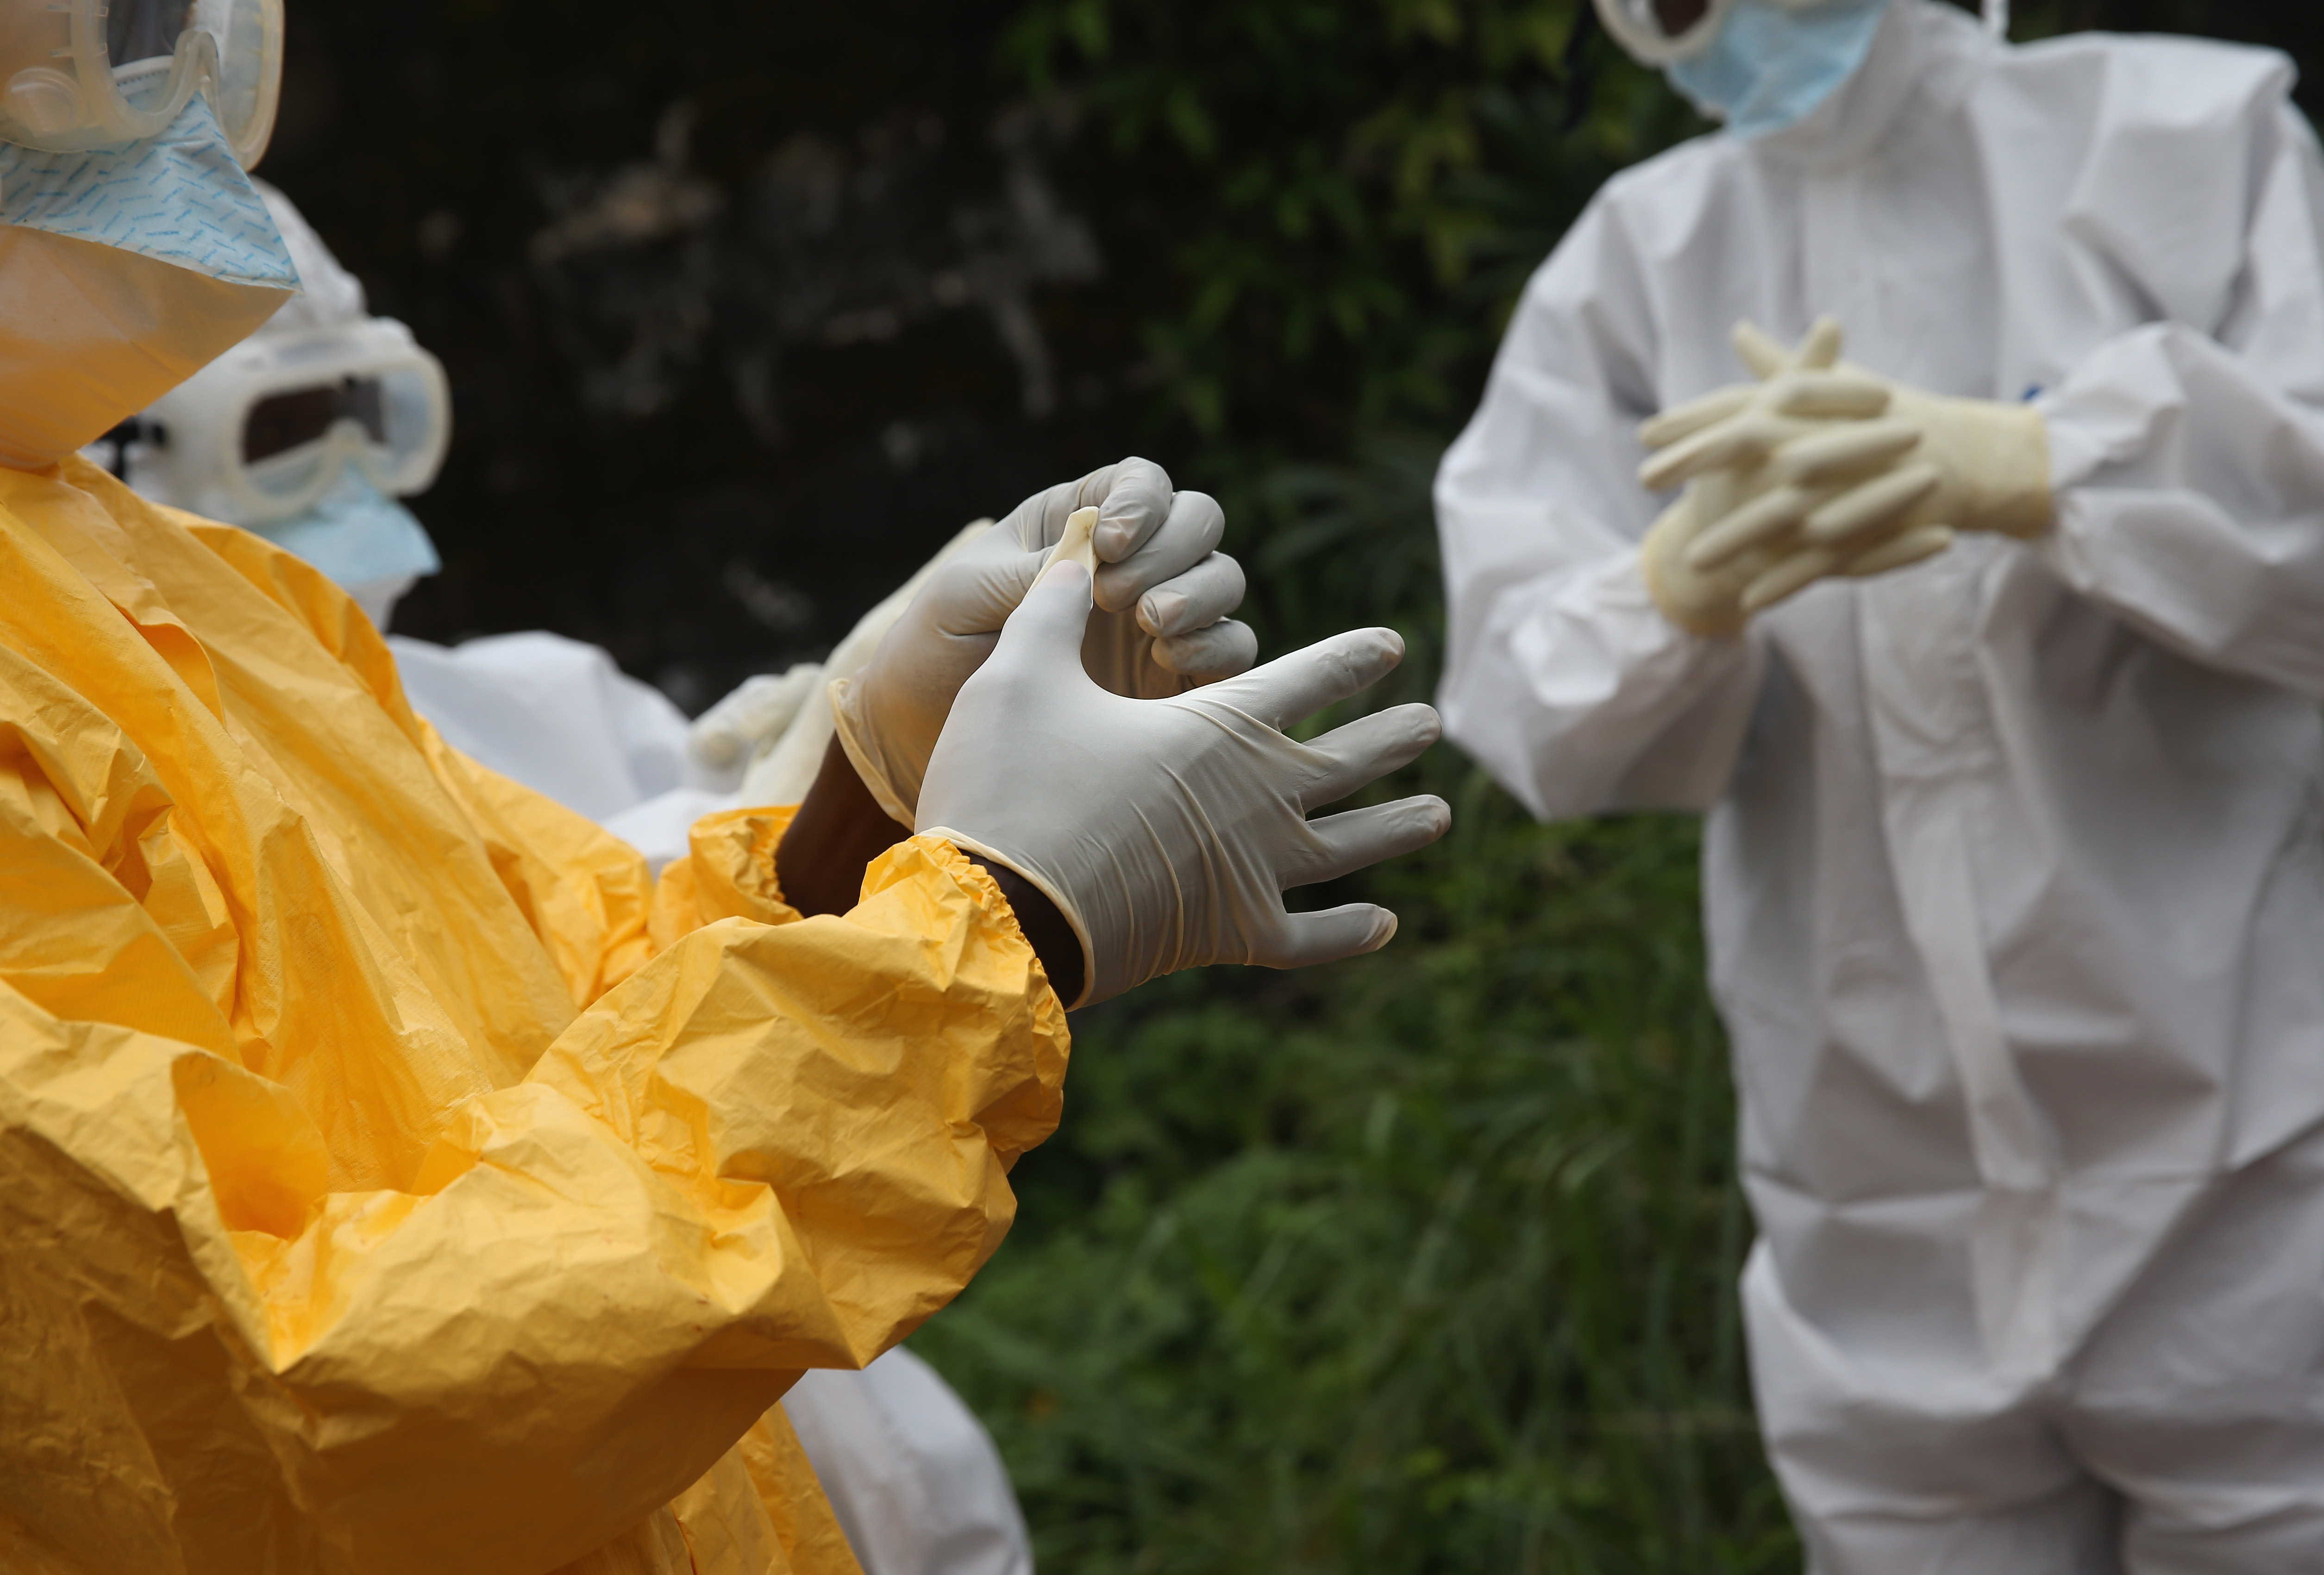 Health workers dress in protective clothing before touching the body of an Ebola victim in Liberia. (Photo by John Moore/Getty Images)